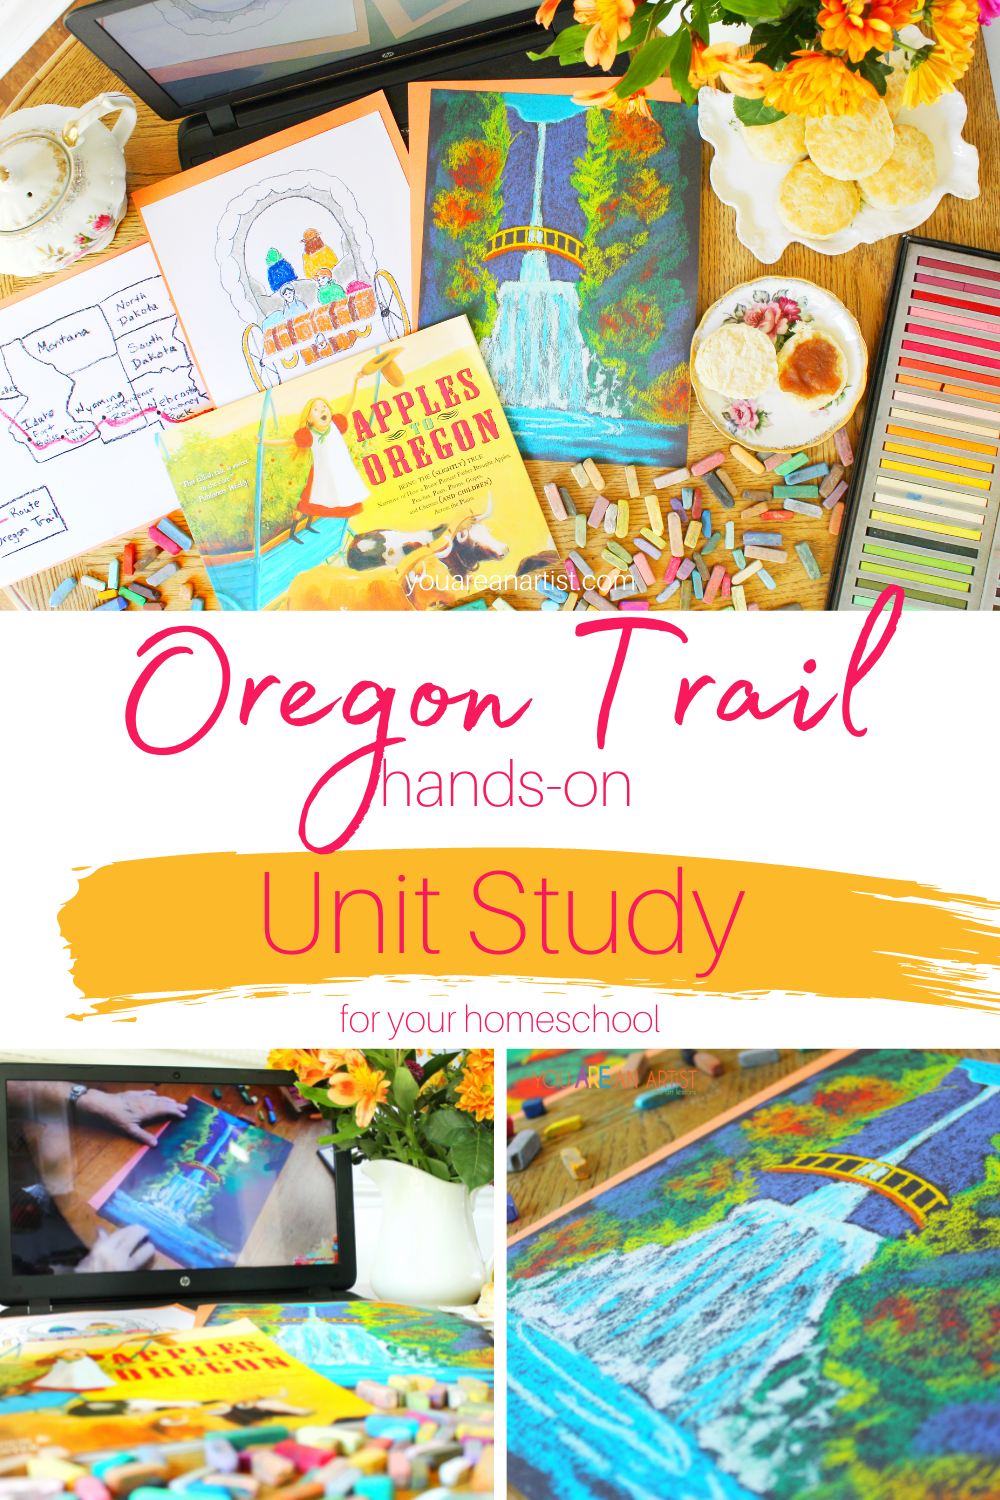 A Hands-On Oregon Trail Unit Study For Your Homeschool: You'll love these ideas for a hands-on Oregon Trail unit study for your kids. Homeschool history is much more enjoyable with books, art, maps, and more! #OregonTrail #OregonTrailunitstudy #OregonTraillessons #hands-onOregonTrail #homeschoolhistory #homeschool #chalkpastels #YouAREAnArtist